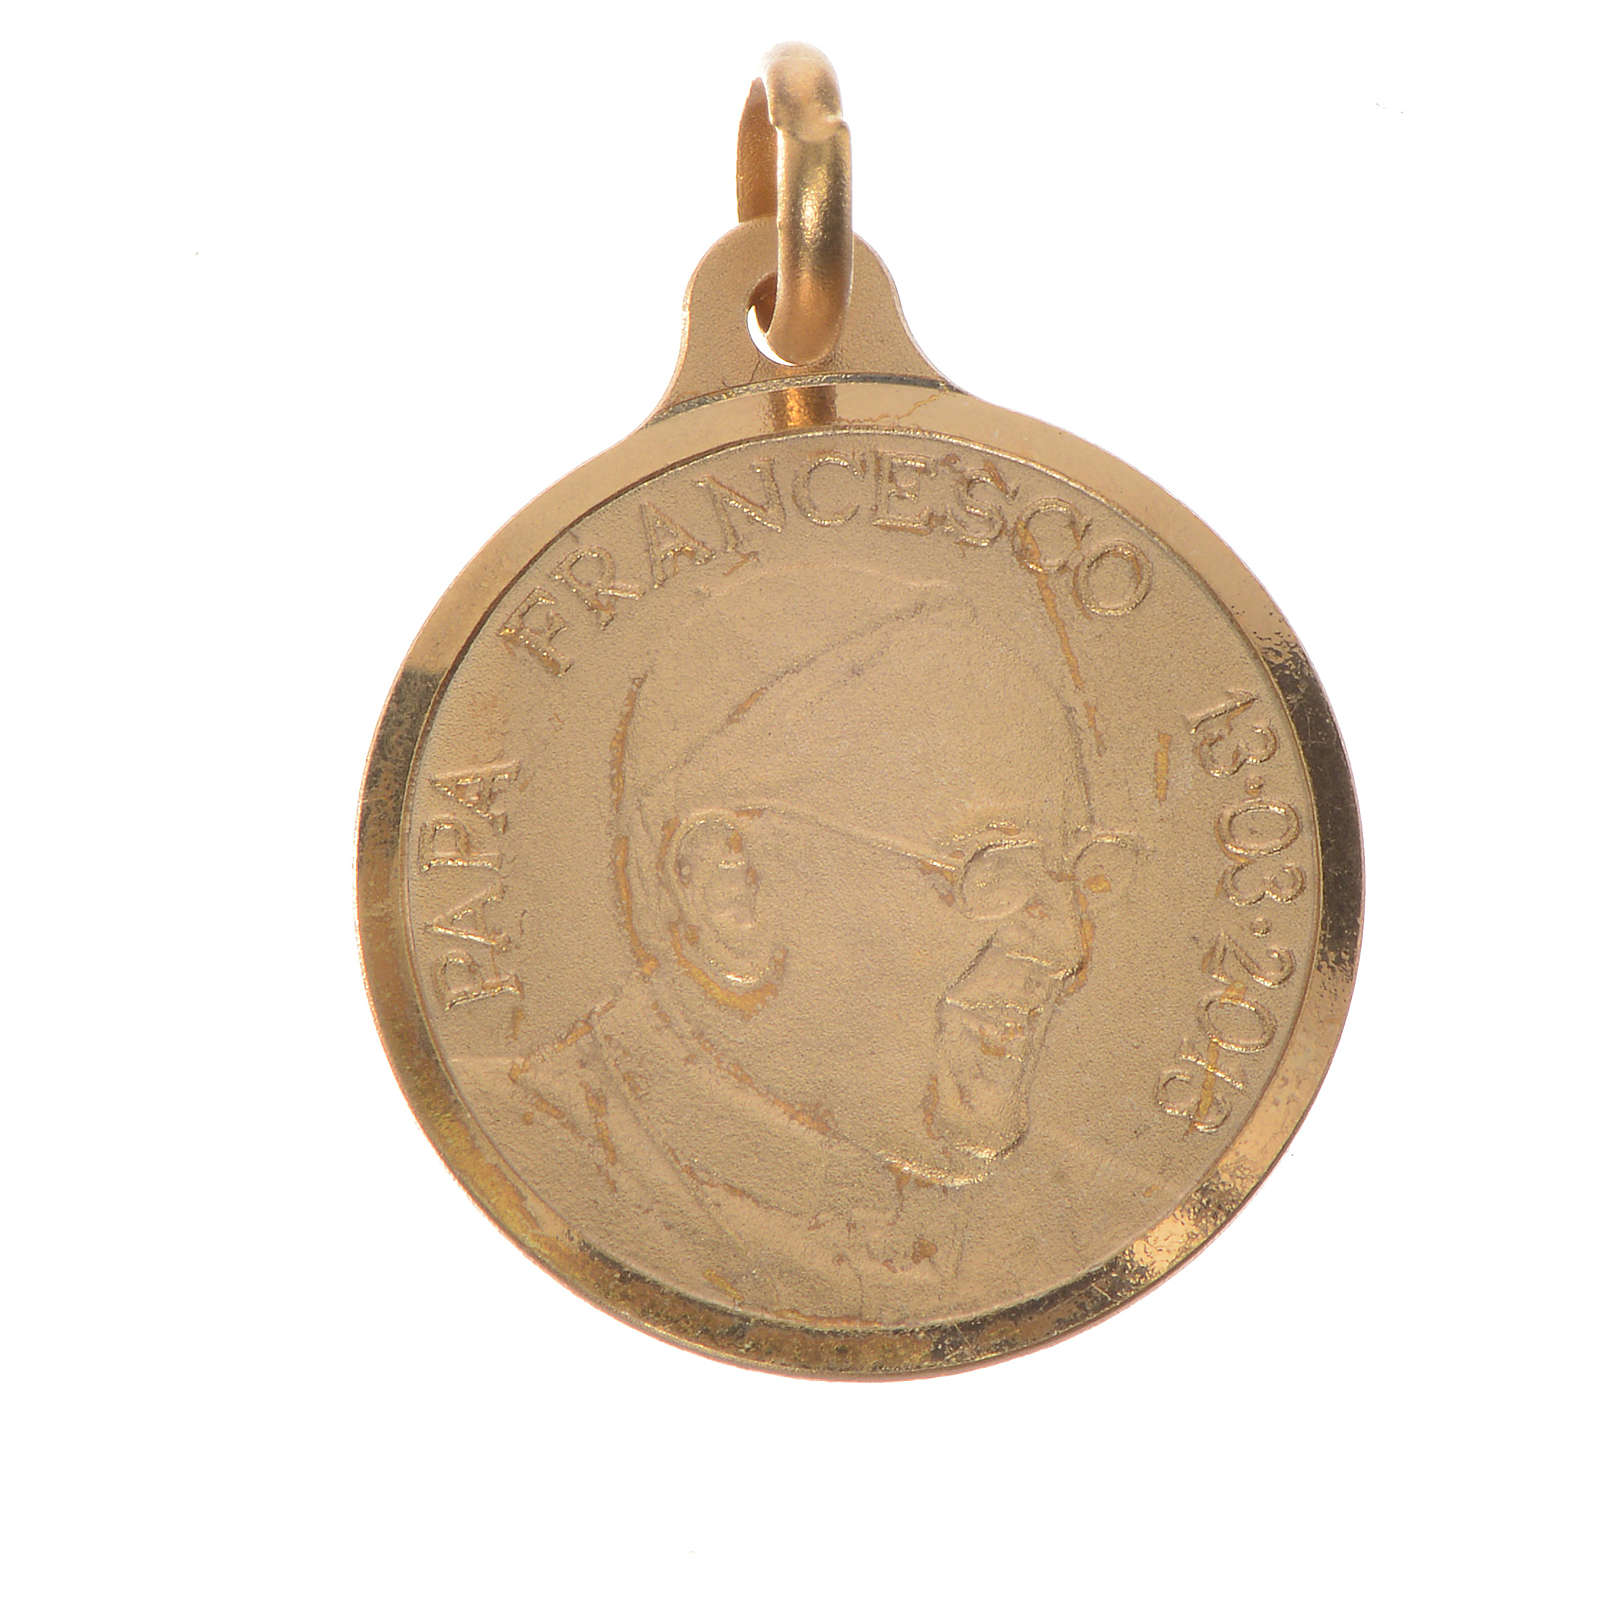 Pope Francis medal 16mm 800 silver, golden 4